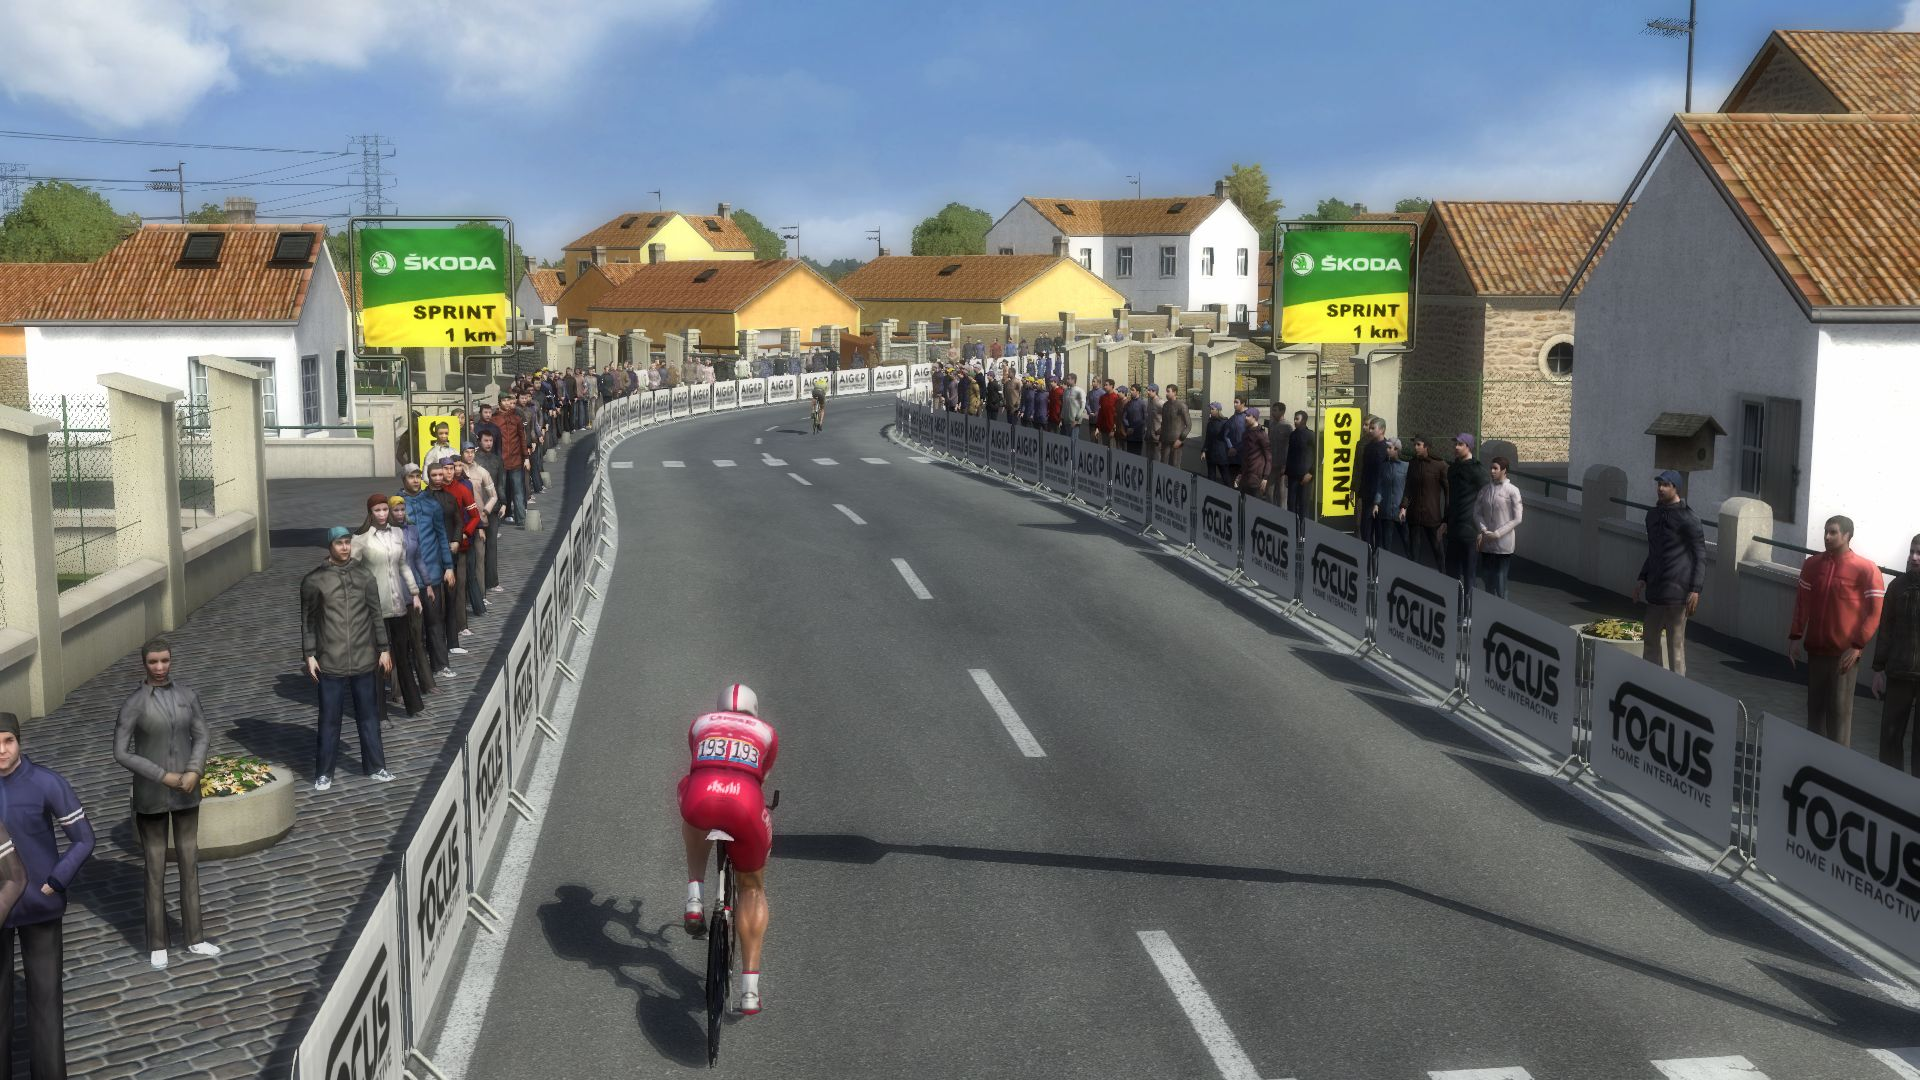 pcmdaily.com/images/mg/2019/Races/HC/Slovenie/mg19_slo_s04_14.jpg